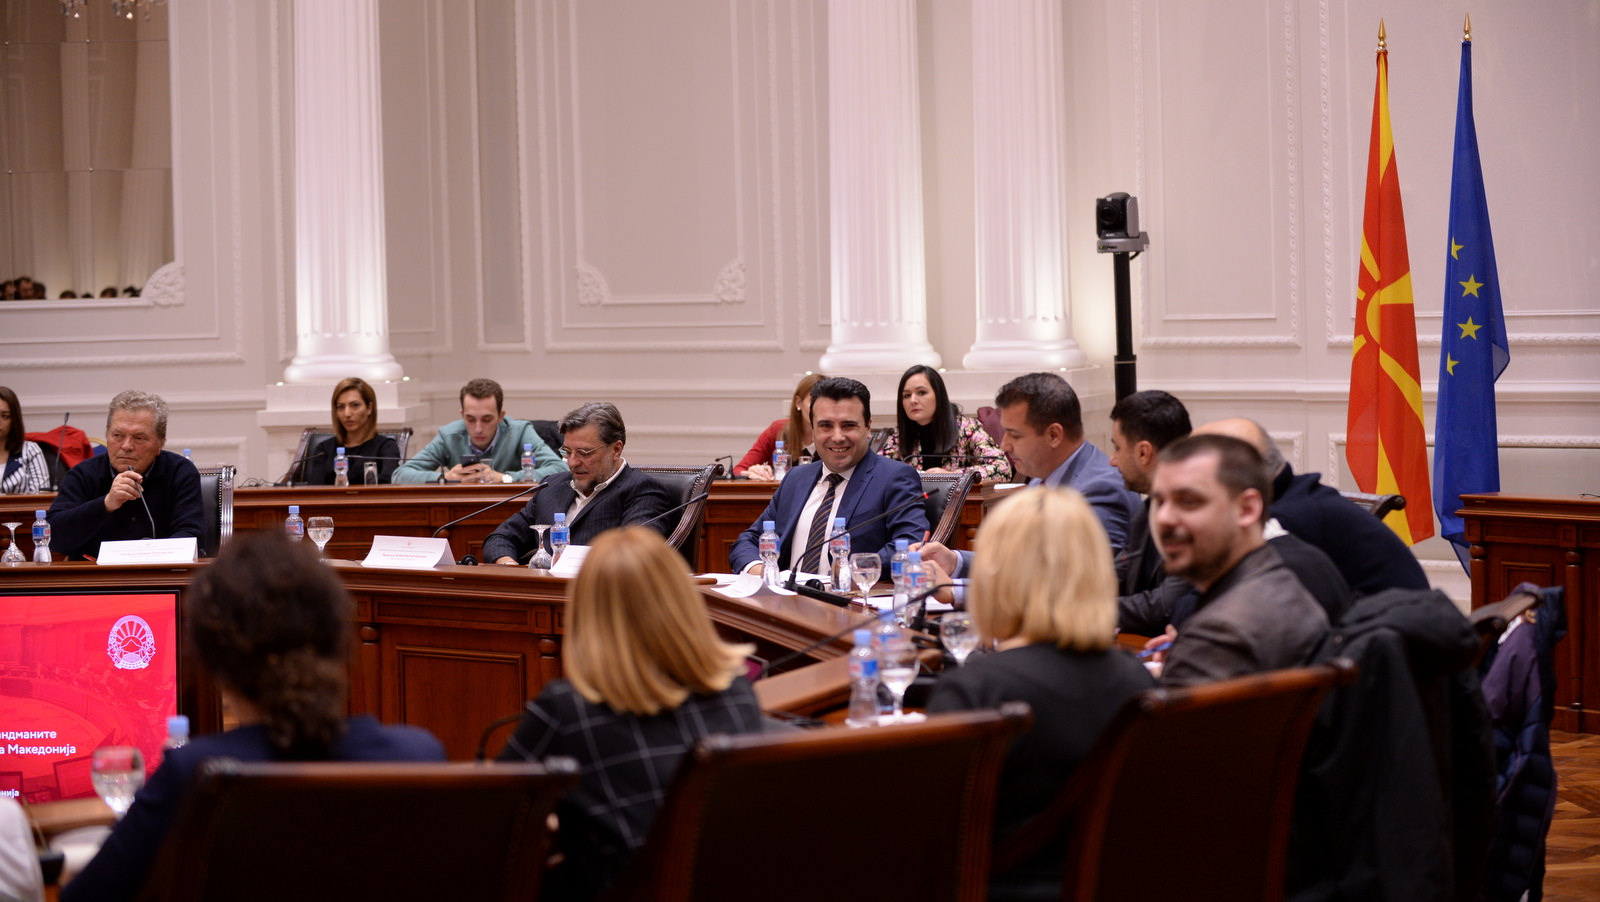 Debates on constitutional amendments, Zaev open to suggestions